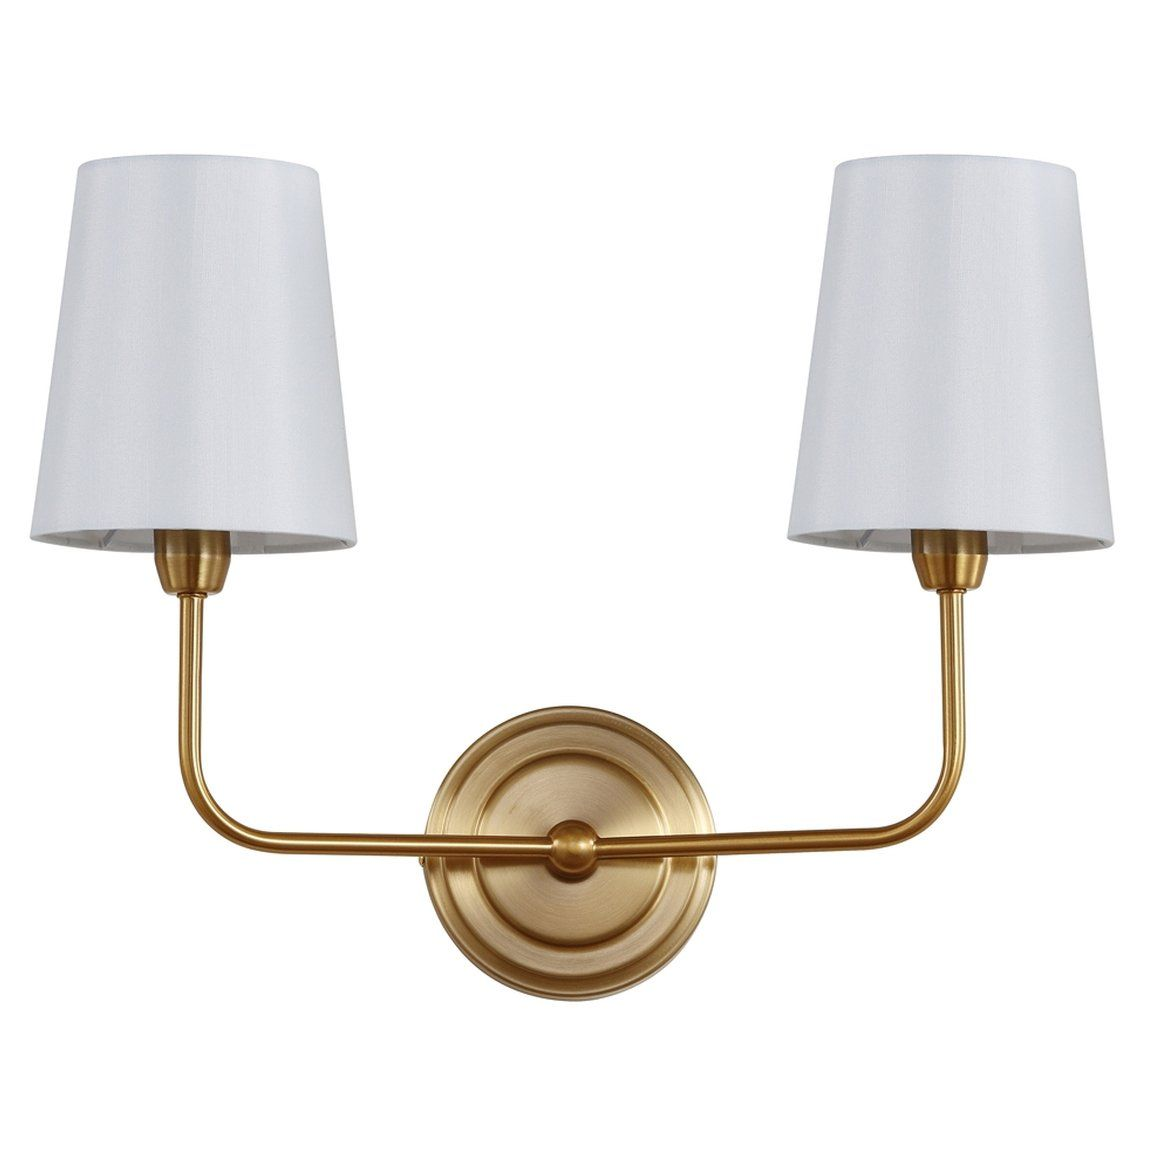 Brookes Double Wall Sconce Double Wall Sconce Wall Sconce Lighting Wall Lights